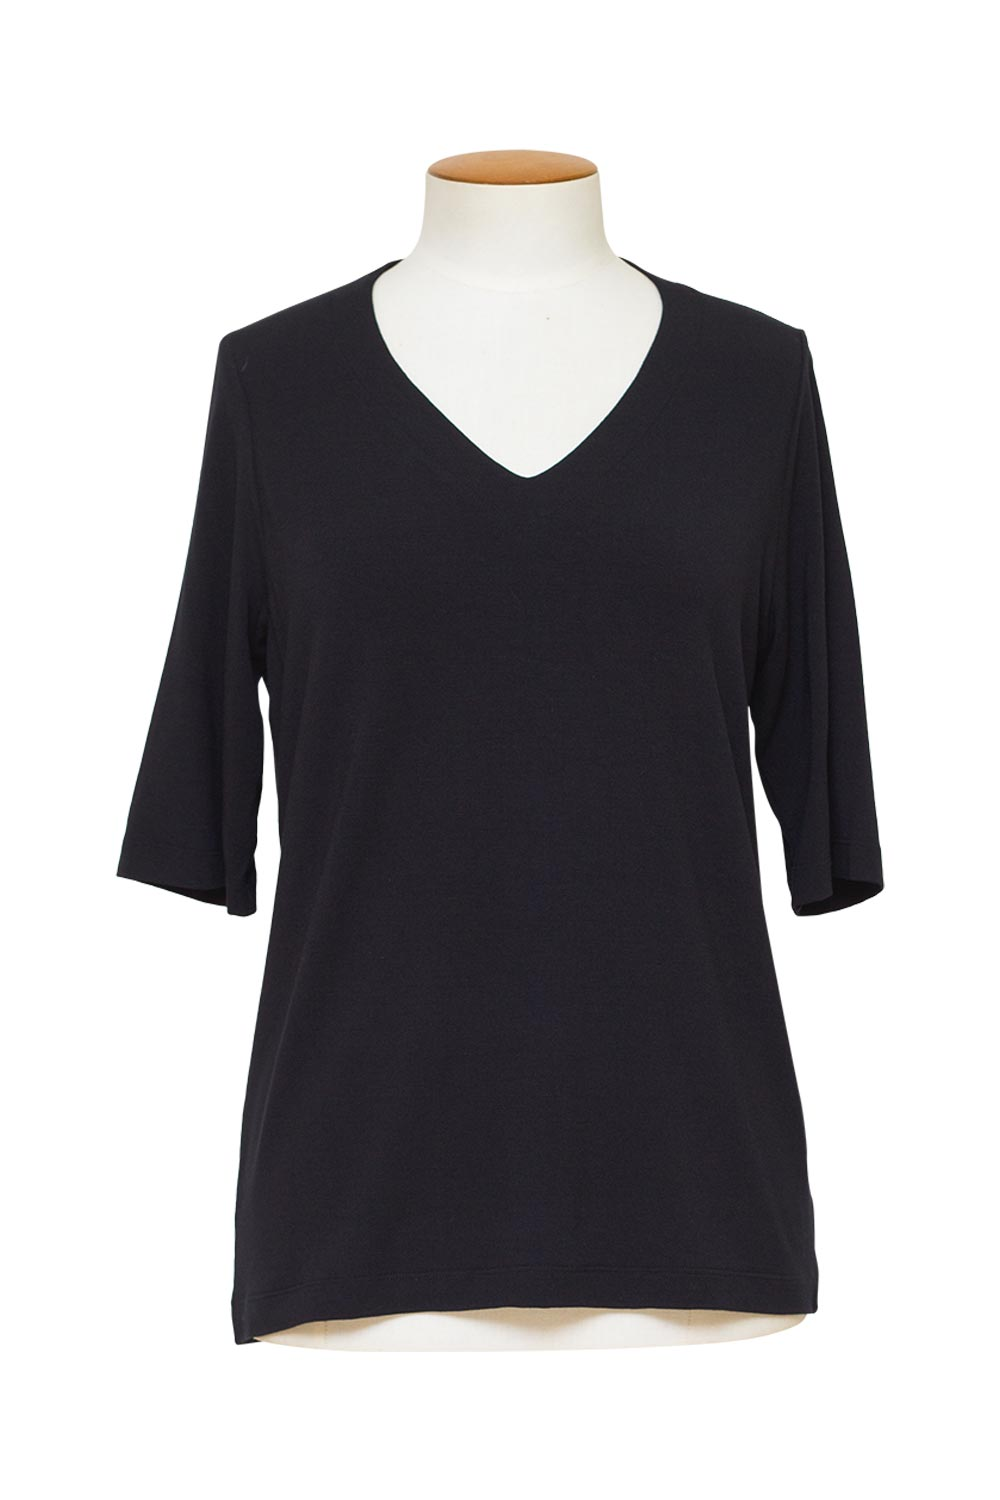 Paula Ryan - 9609 Easy Fit Half Sleeve Top